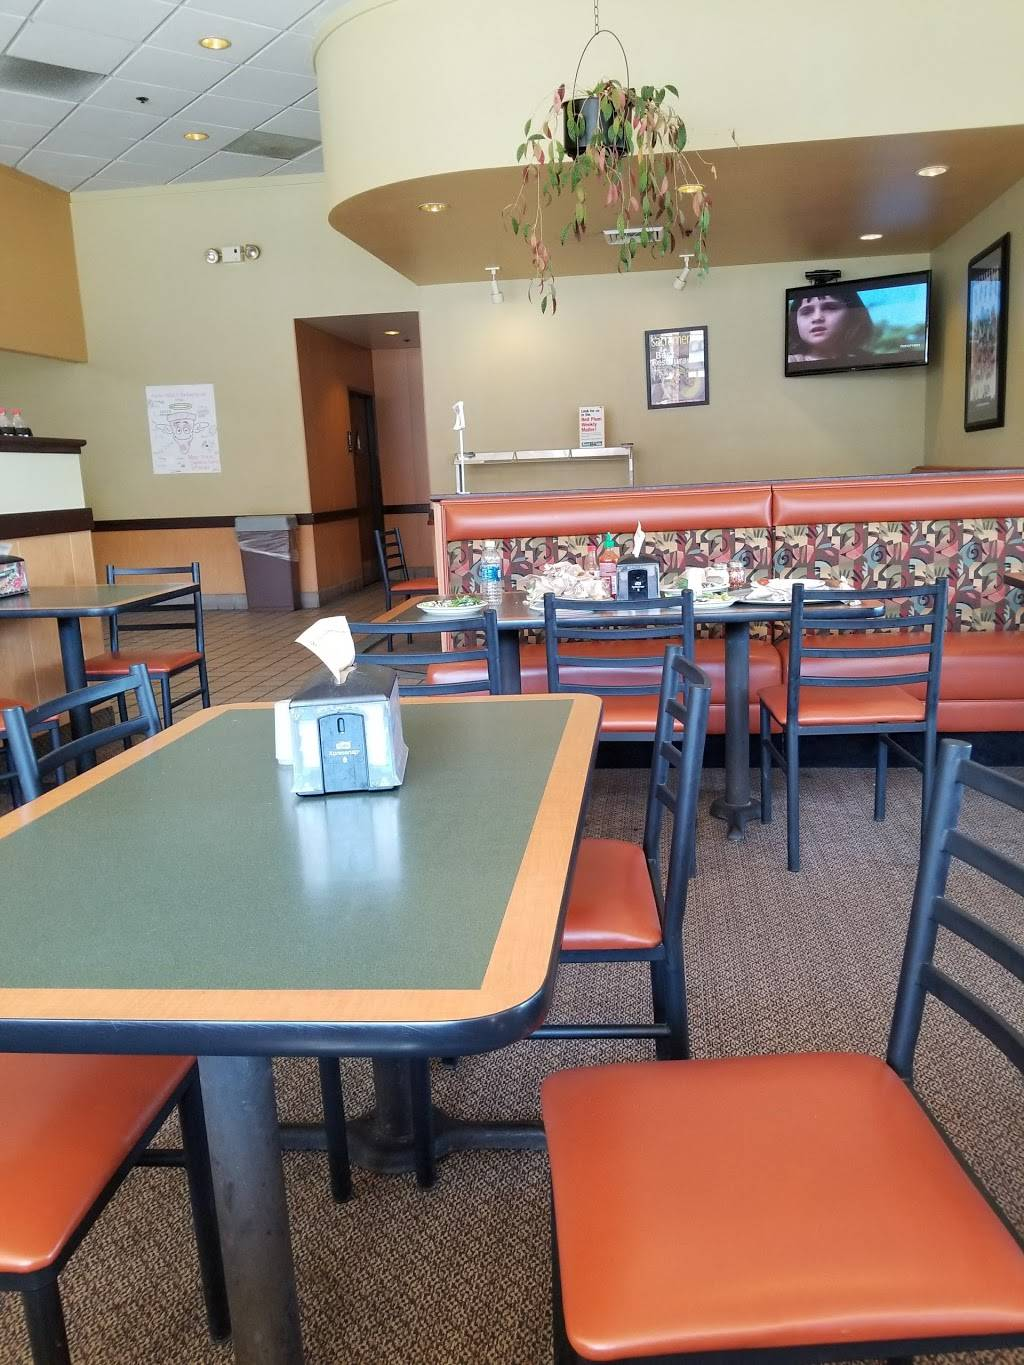 Round Table Pizza | meal delivery | 4005 Manzanita Ave, Carmichael, CA 95608, USA | 9164854209 OR +1 916-485-4209